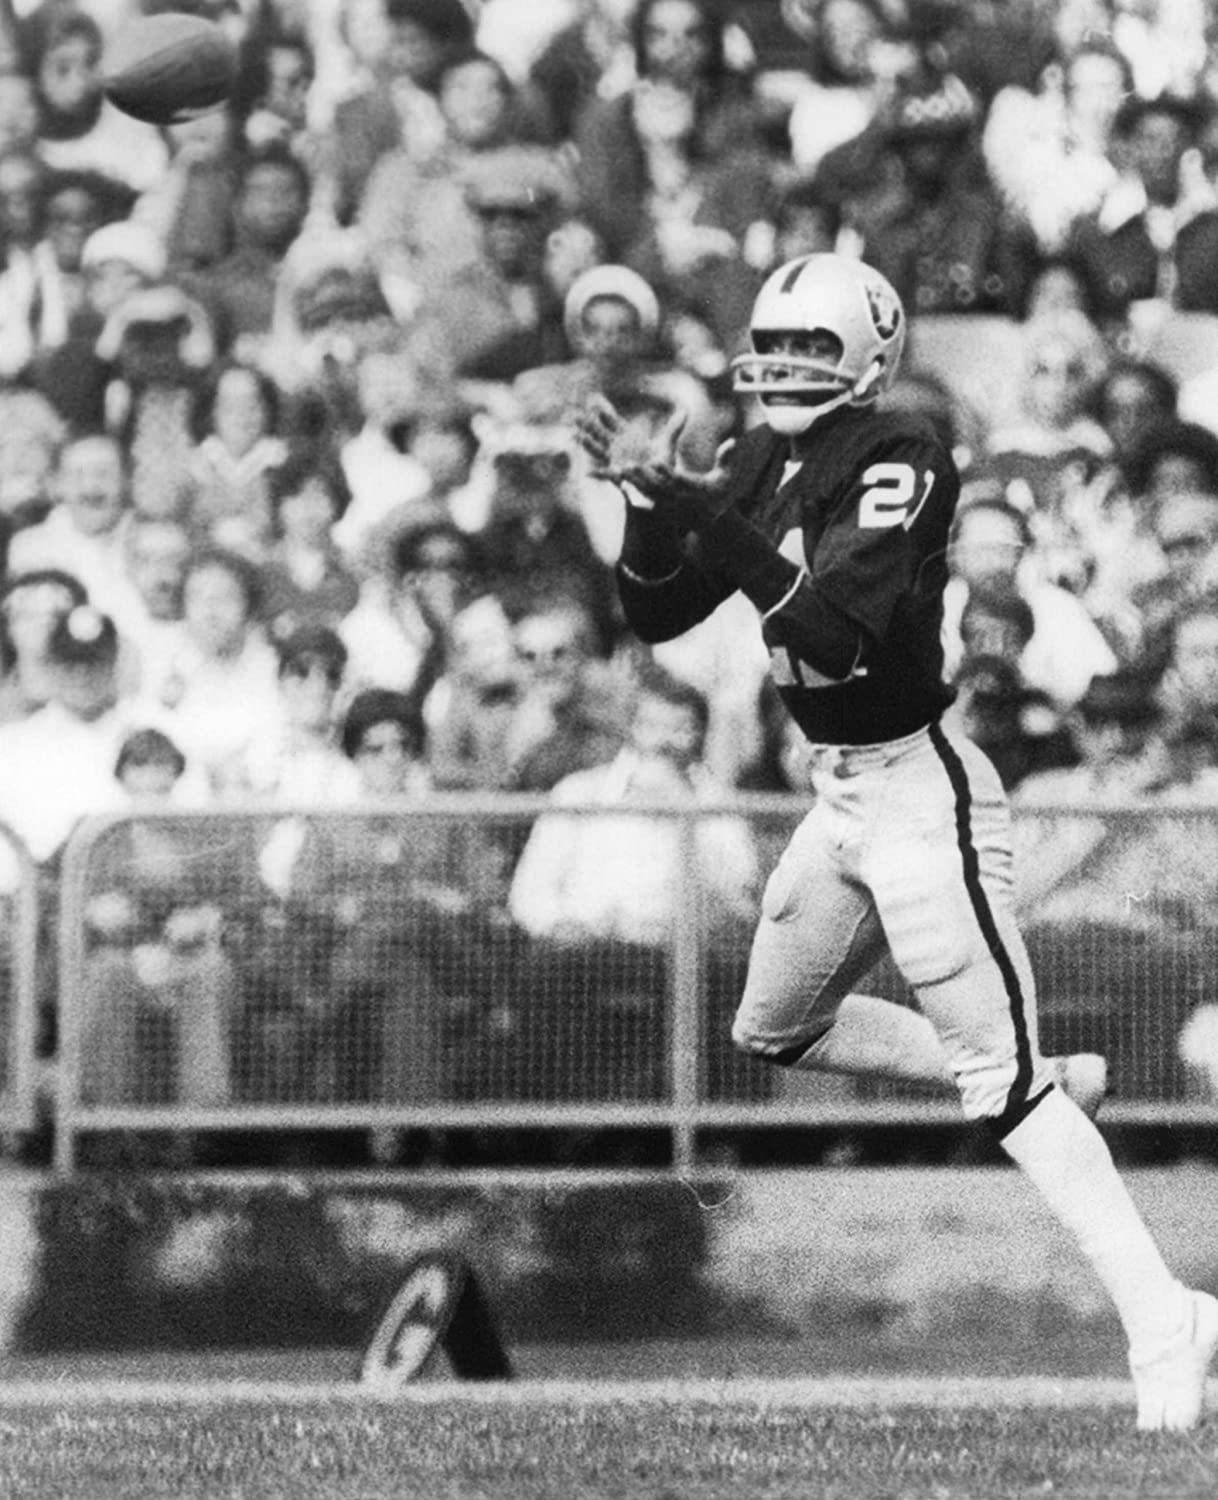 CLIFF BRANCH OAKLAND RAIDERS 8X10 HIGH GLOSSY SPORTS ACTION PHOTO M